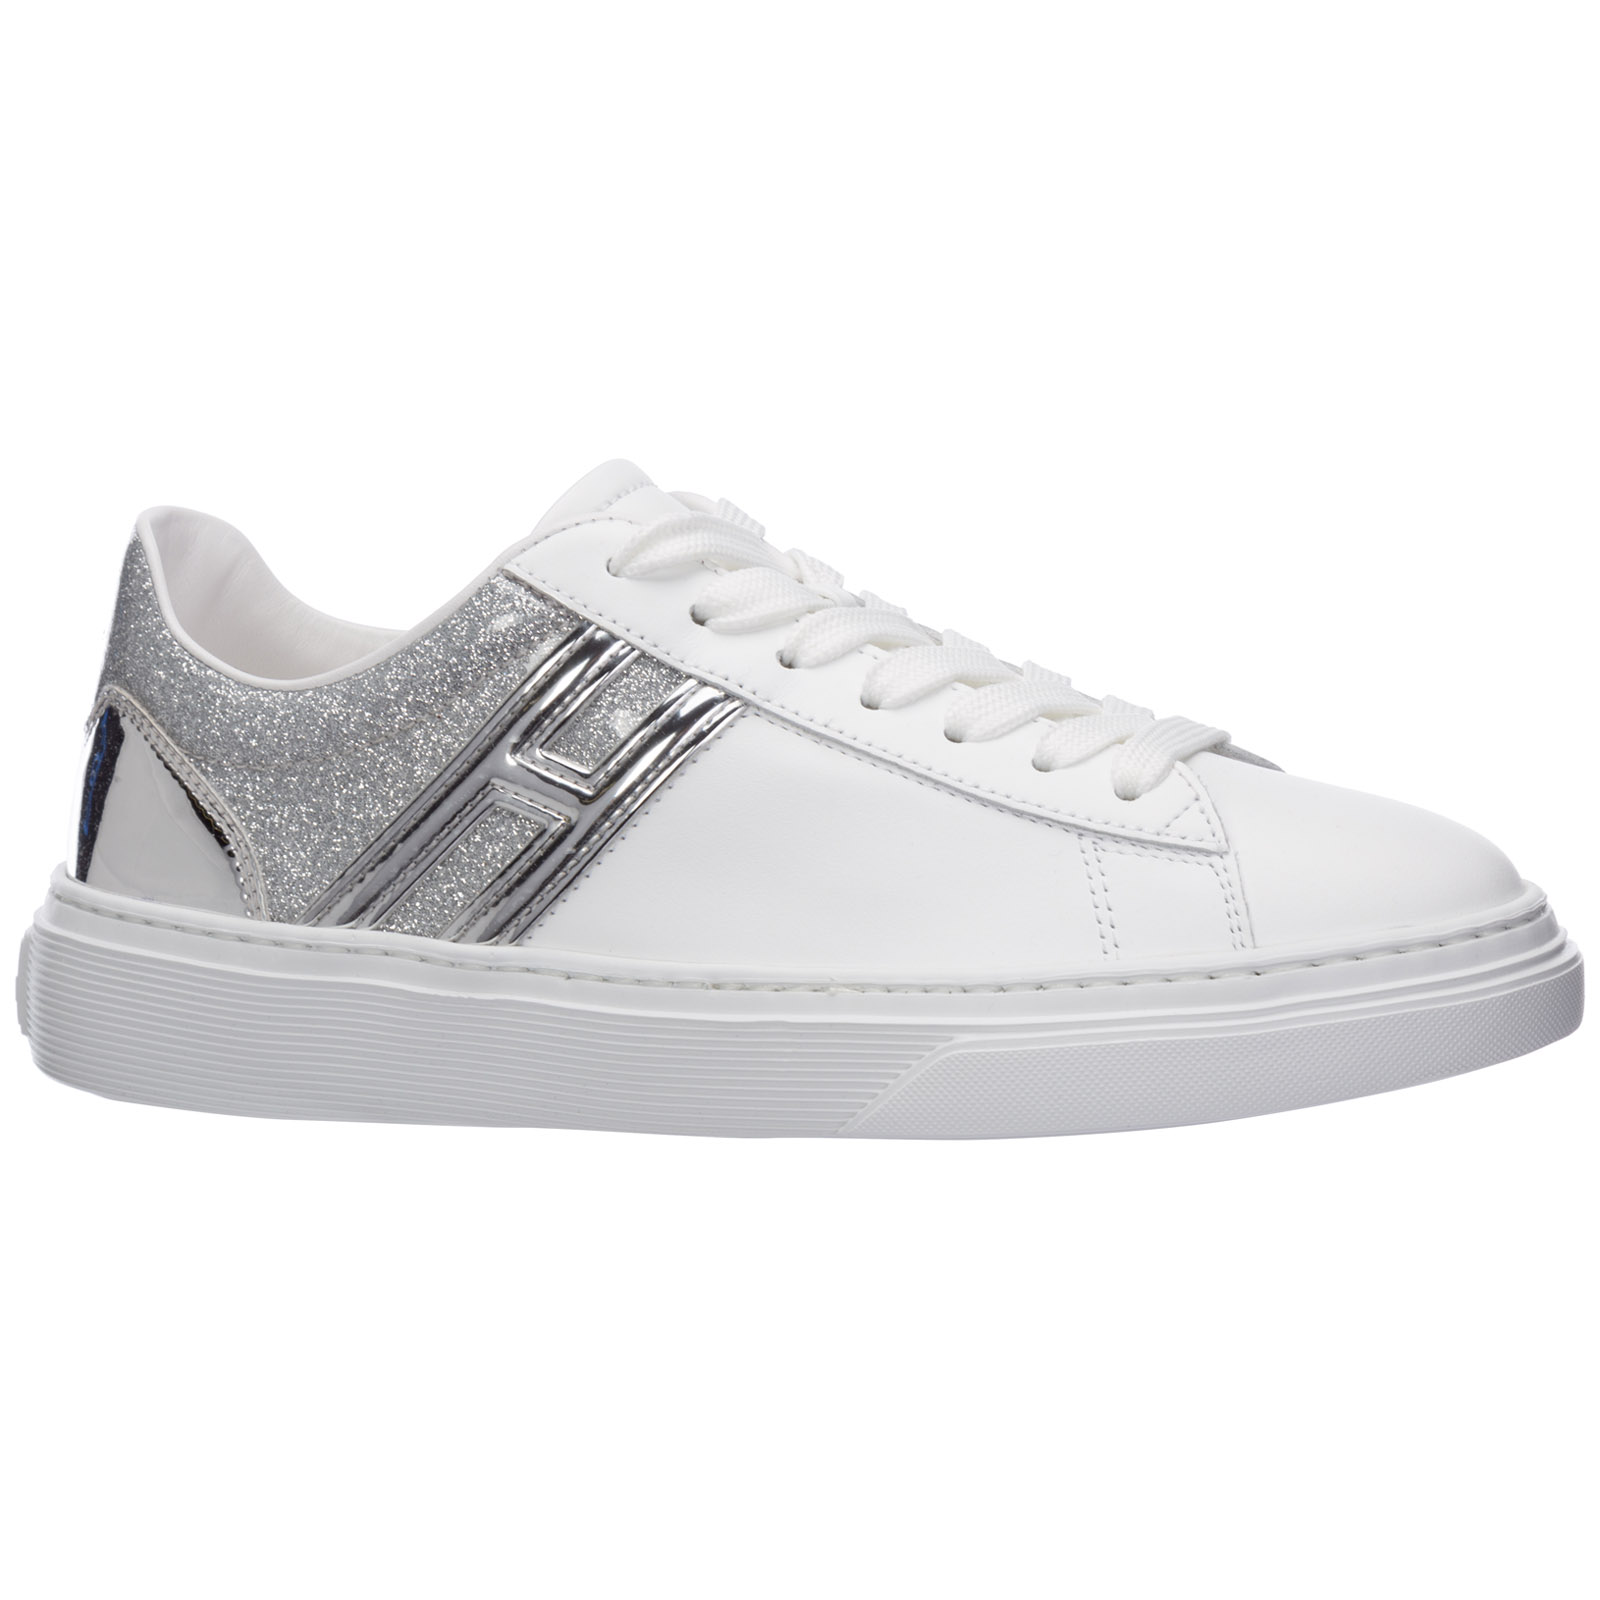 Women's shoes leather trainers sneakers h365